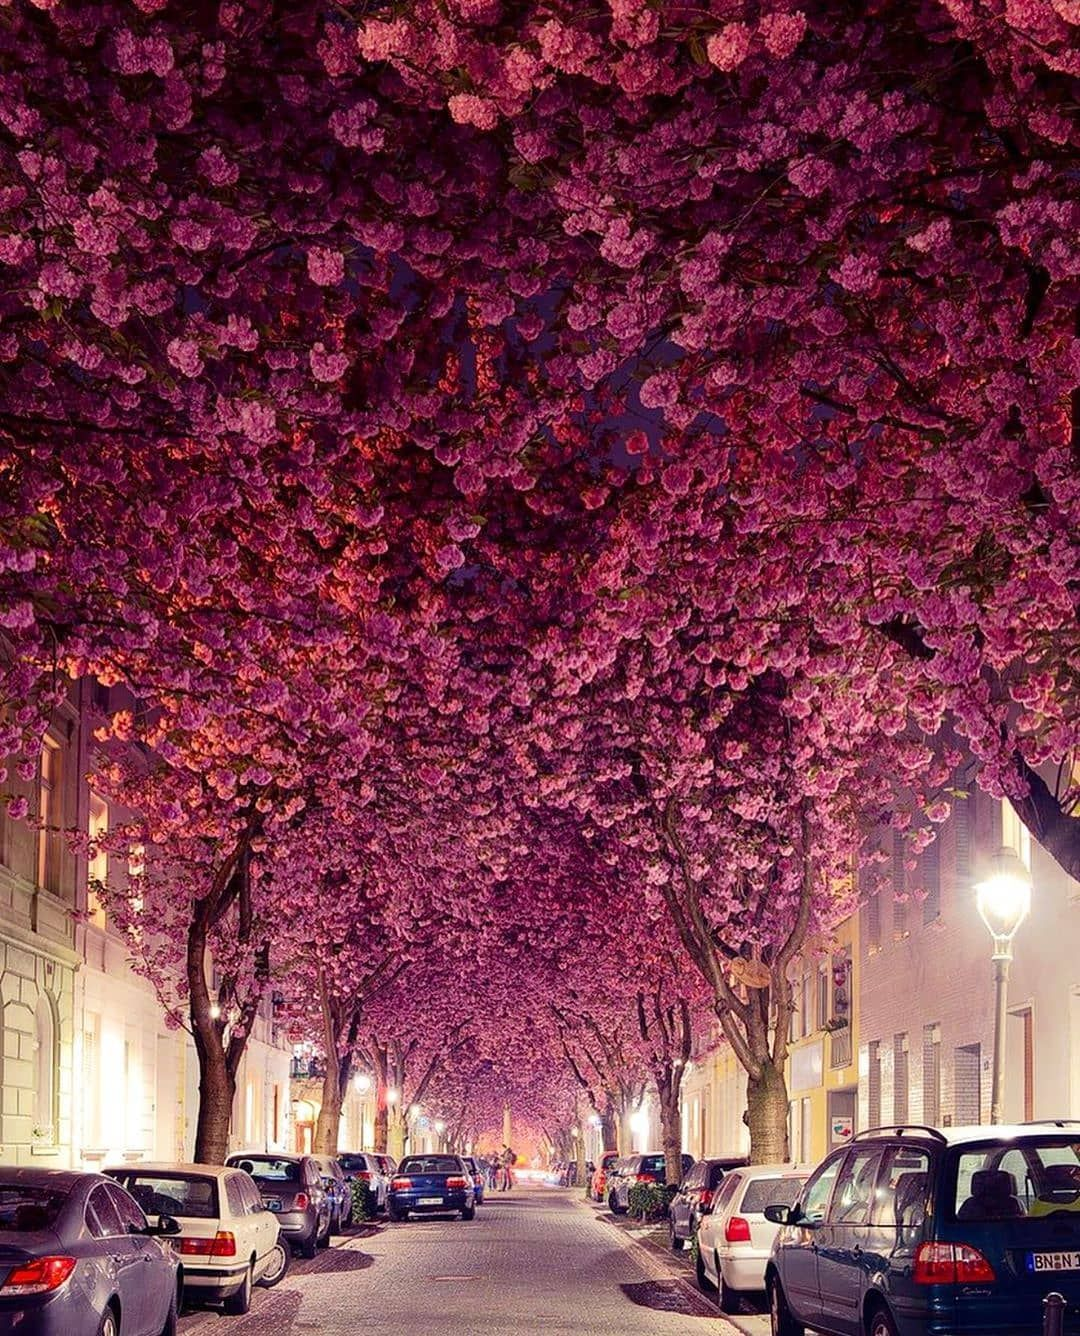 Art Architecture On Instagram Describe This Amazing Street In One Word A Street Full Of Cherry Blossoms Located Nature Pictures Blossom Trees Tree Seeds